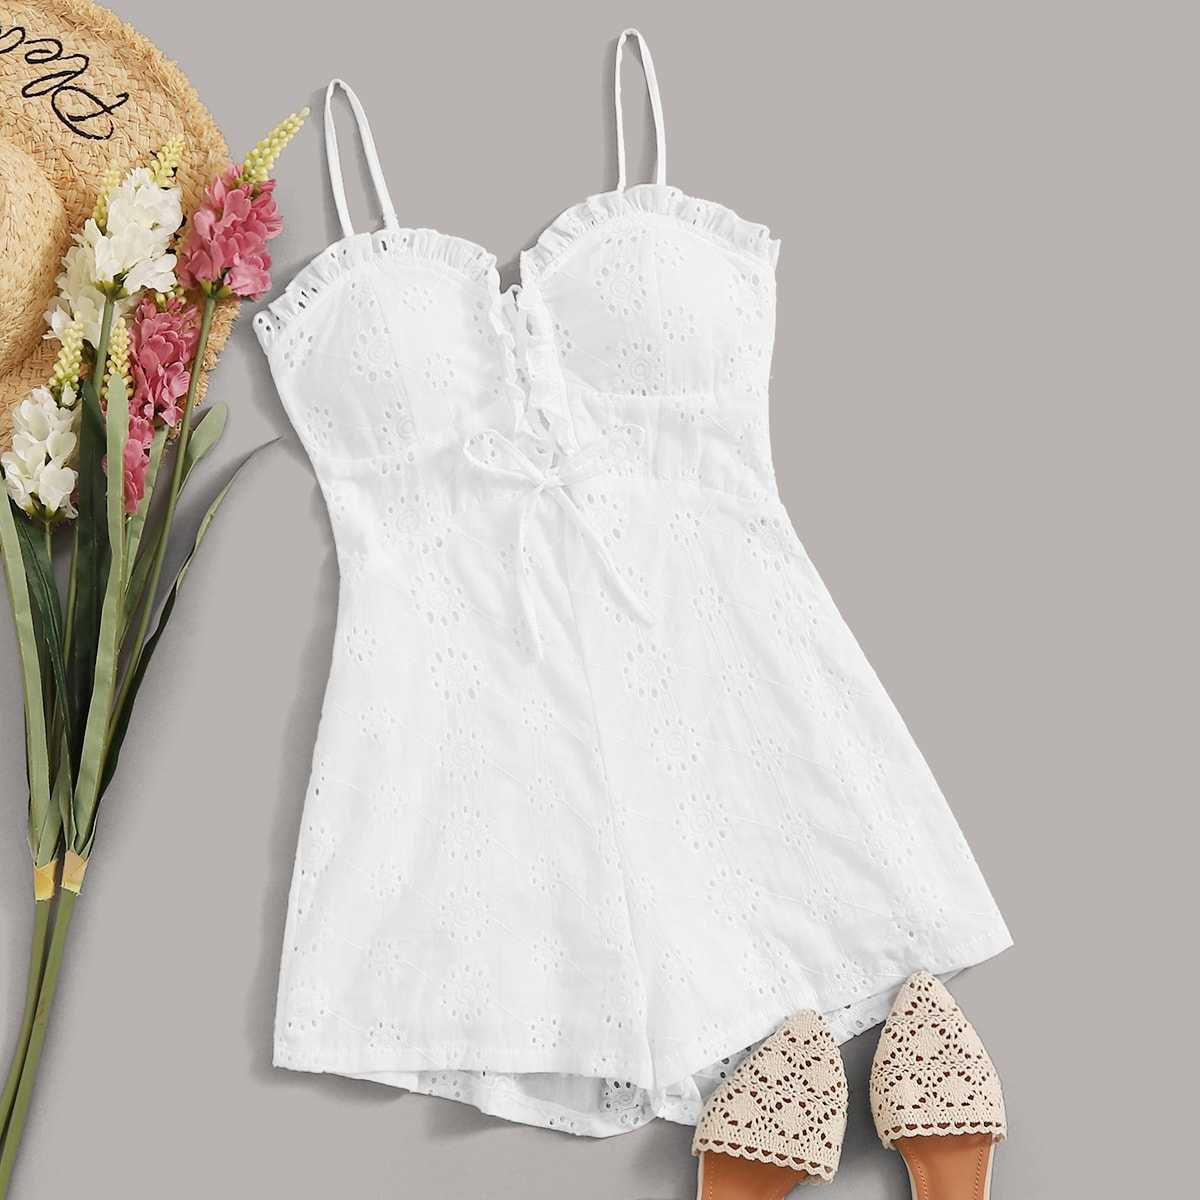 Eyelet Embroidery Lace-up Shirred Cami Playsuit in White by ROMWE on GOOFASH